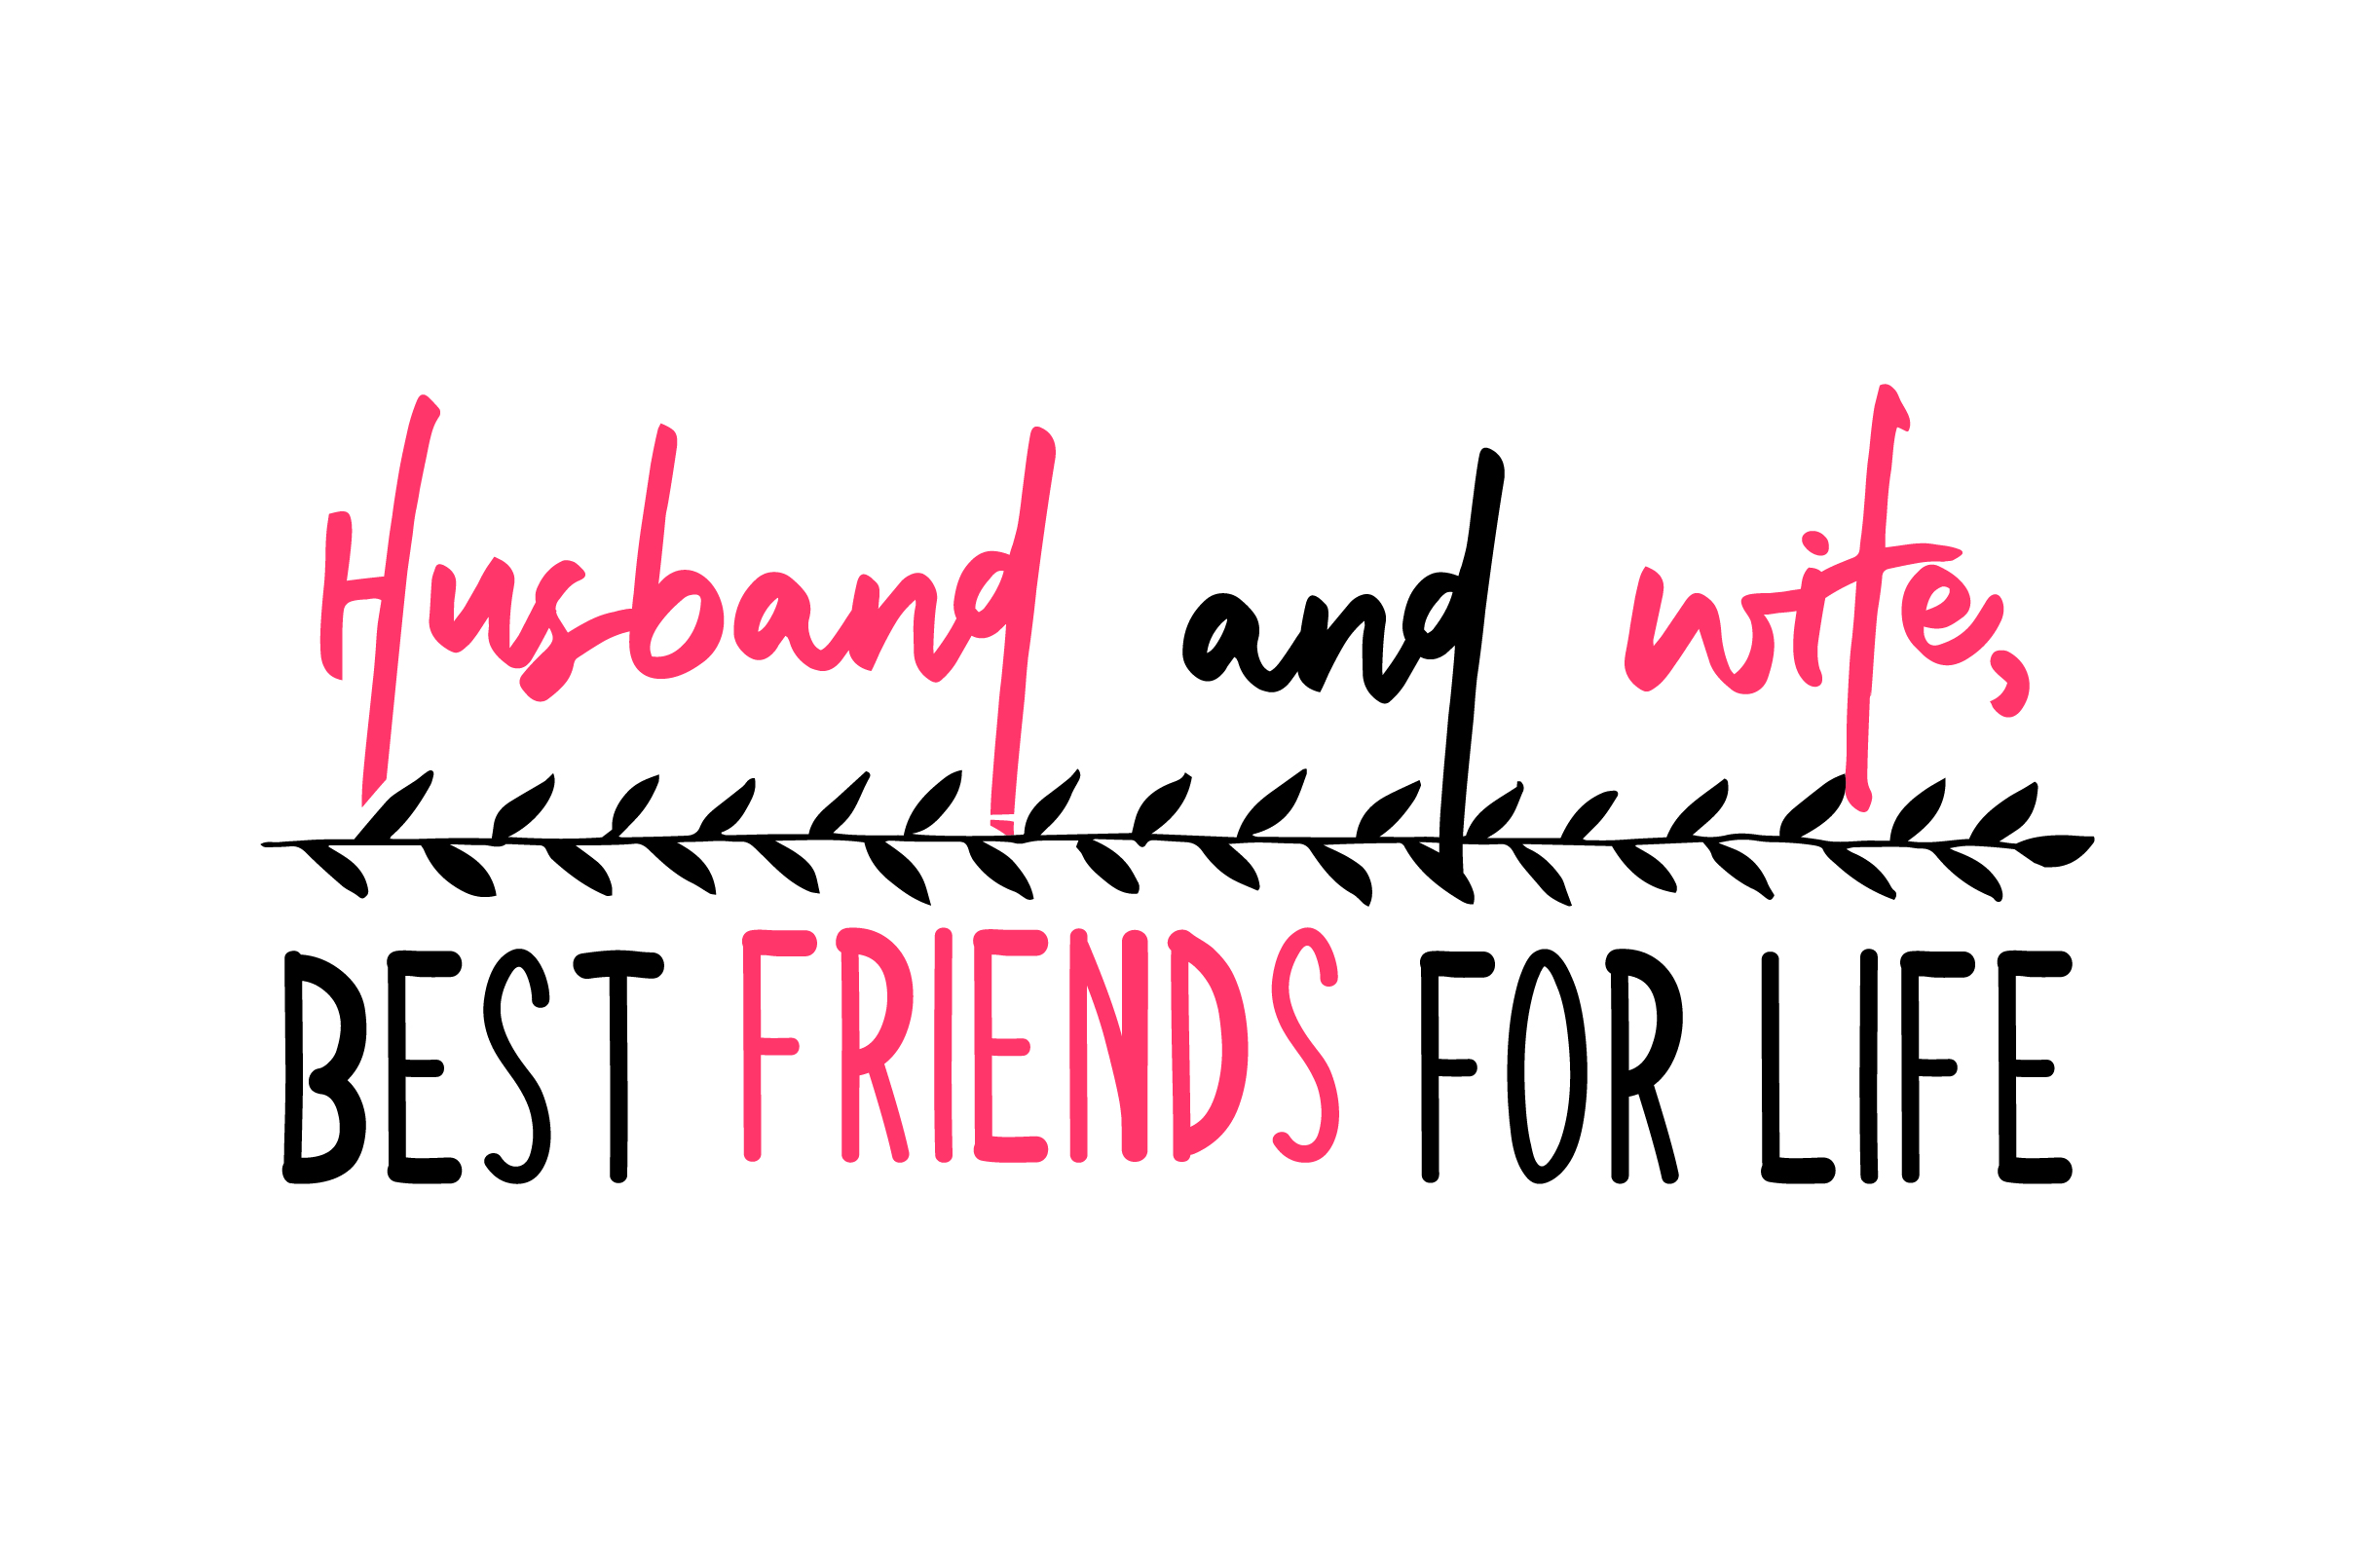 Husband And Wife Best Friends For Life Svg Cut File By Creative Fabrica Crafts Creative Fabrica